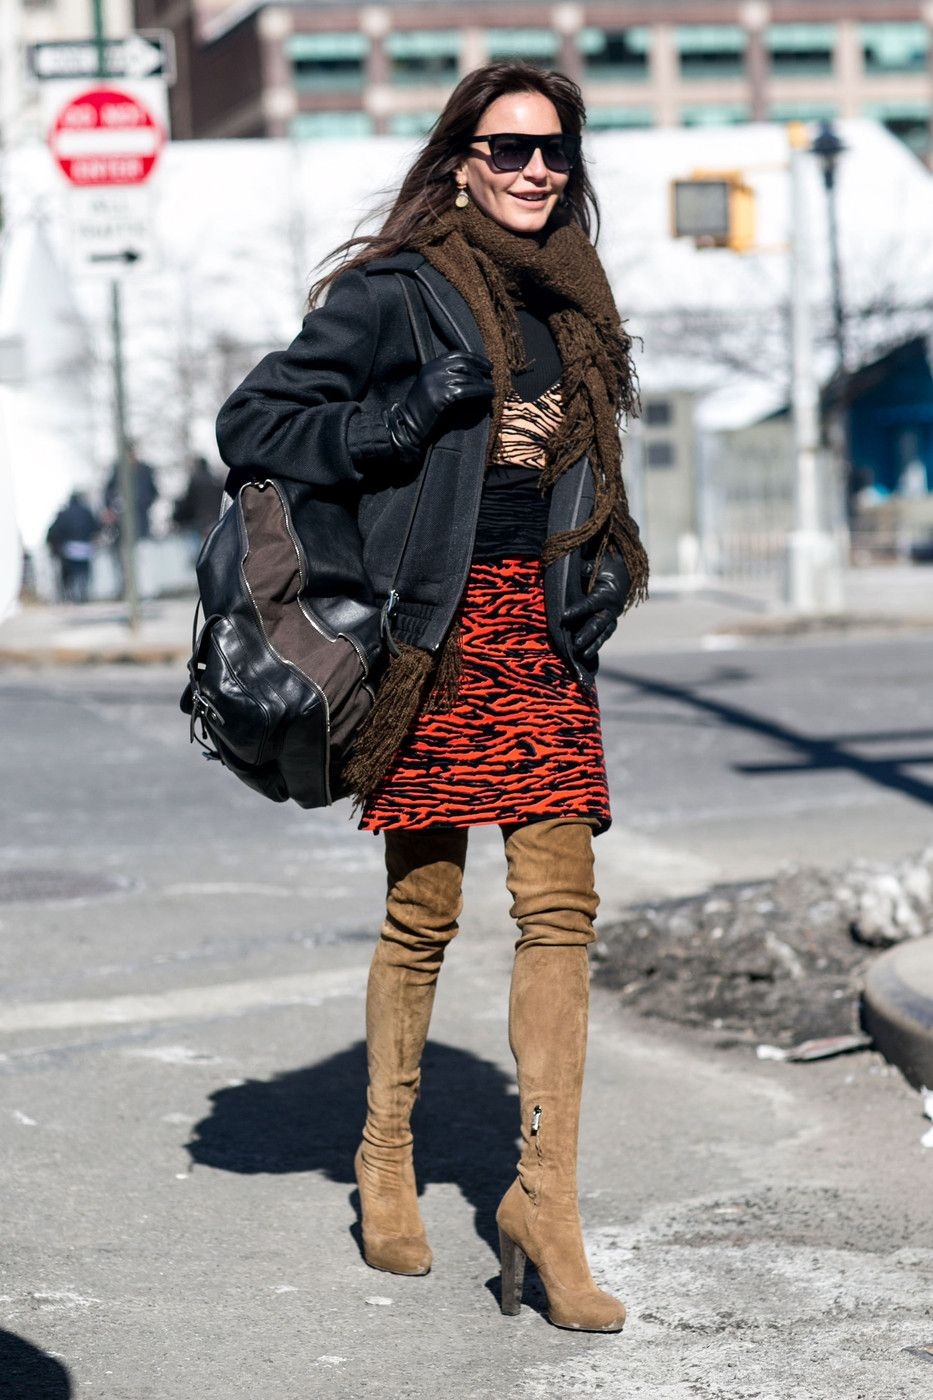 Looking brilliant in red zebra print and suede thigh highs. #NYFW